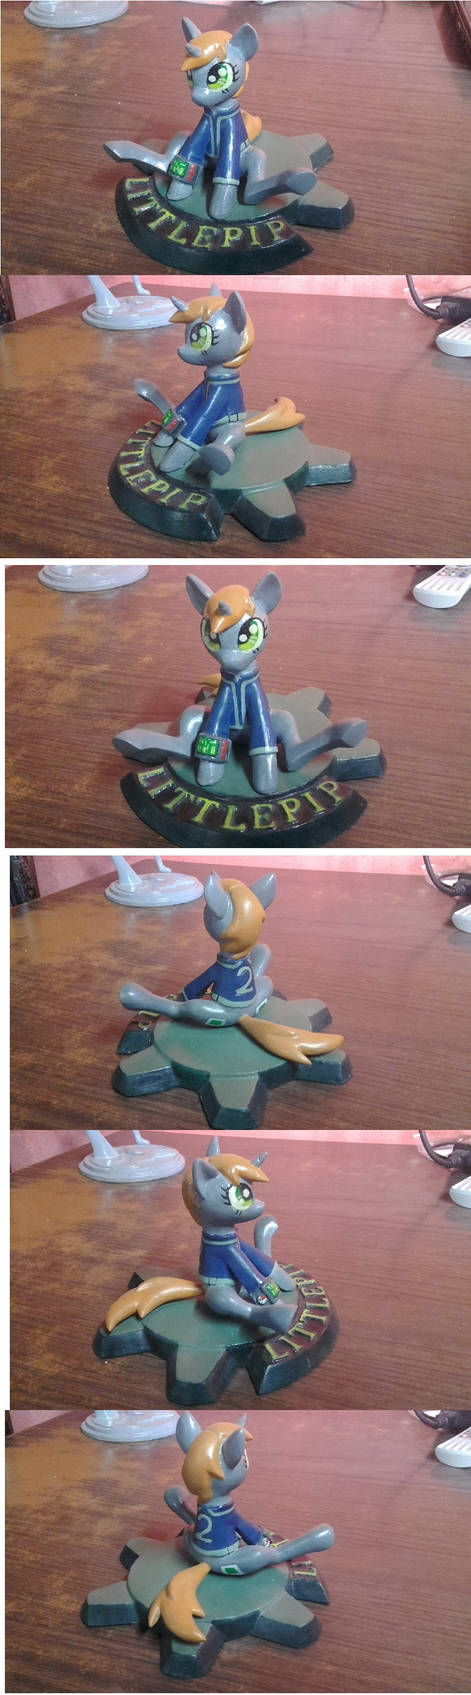 Littlepip finished sculpture comision